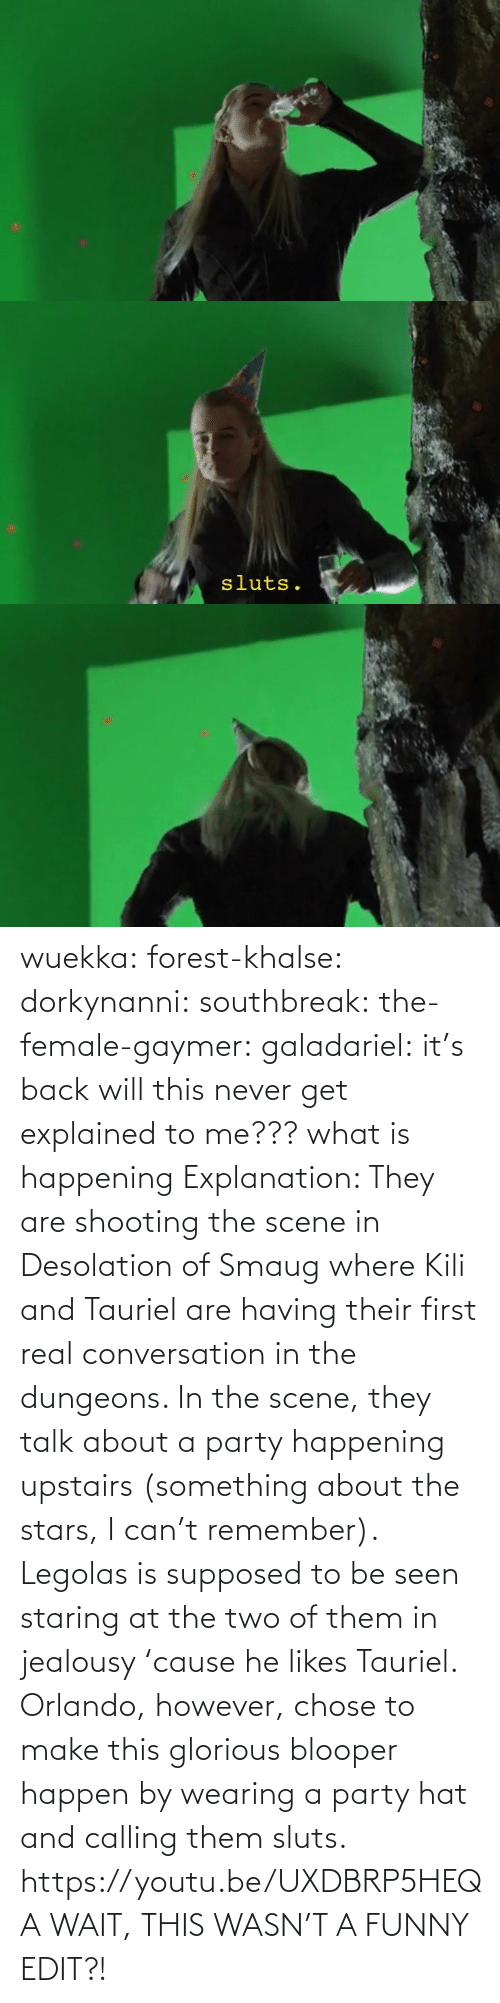 gyroscope: wuekka: forest-khalse:   dorkynanni:  southbreak:   the-female-gaymer:   galadariel:  it's back   will this never get explained to me???    what is happening    Explanation:  They are shooting the scene in Desolation of Smaug where Kili and Tauriel are having their first real conversation in the dungeons.  In the scene, they talk about a party happening upstairs (something about the stars, I can't remember). Legolas is supposed to be seen staring at the two of them in jealousy 'cause he likes Tauriel.  Orlando, however, chose to make this glorious blooper happen by wearing a party hat and calling them sluts.    https://youtu.be/UXDBRP5HEQA    WAIT, THIS WASN'T A FUNNY EDIT?!